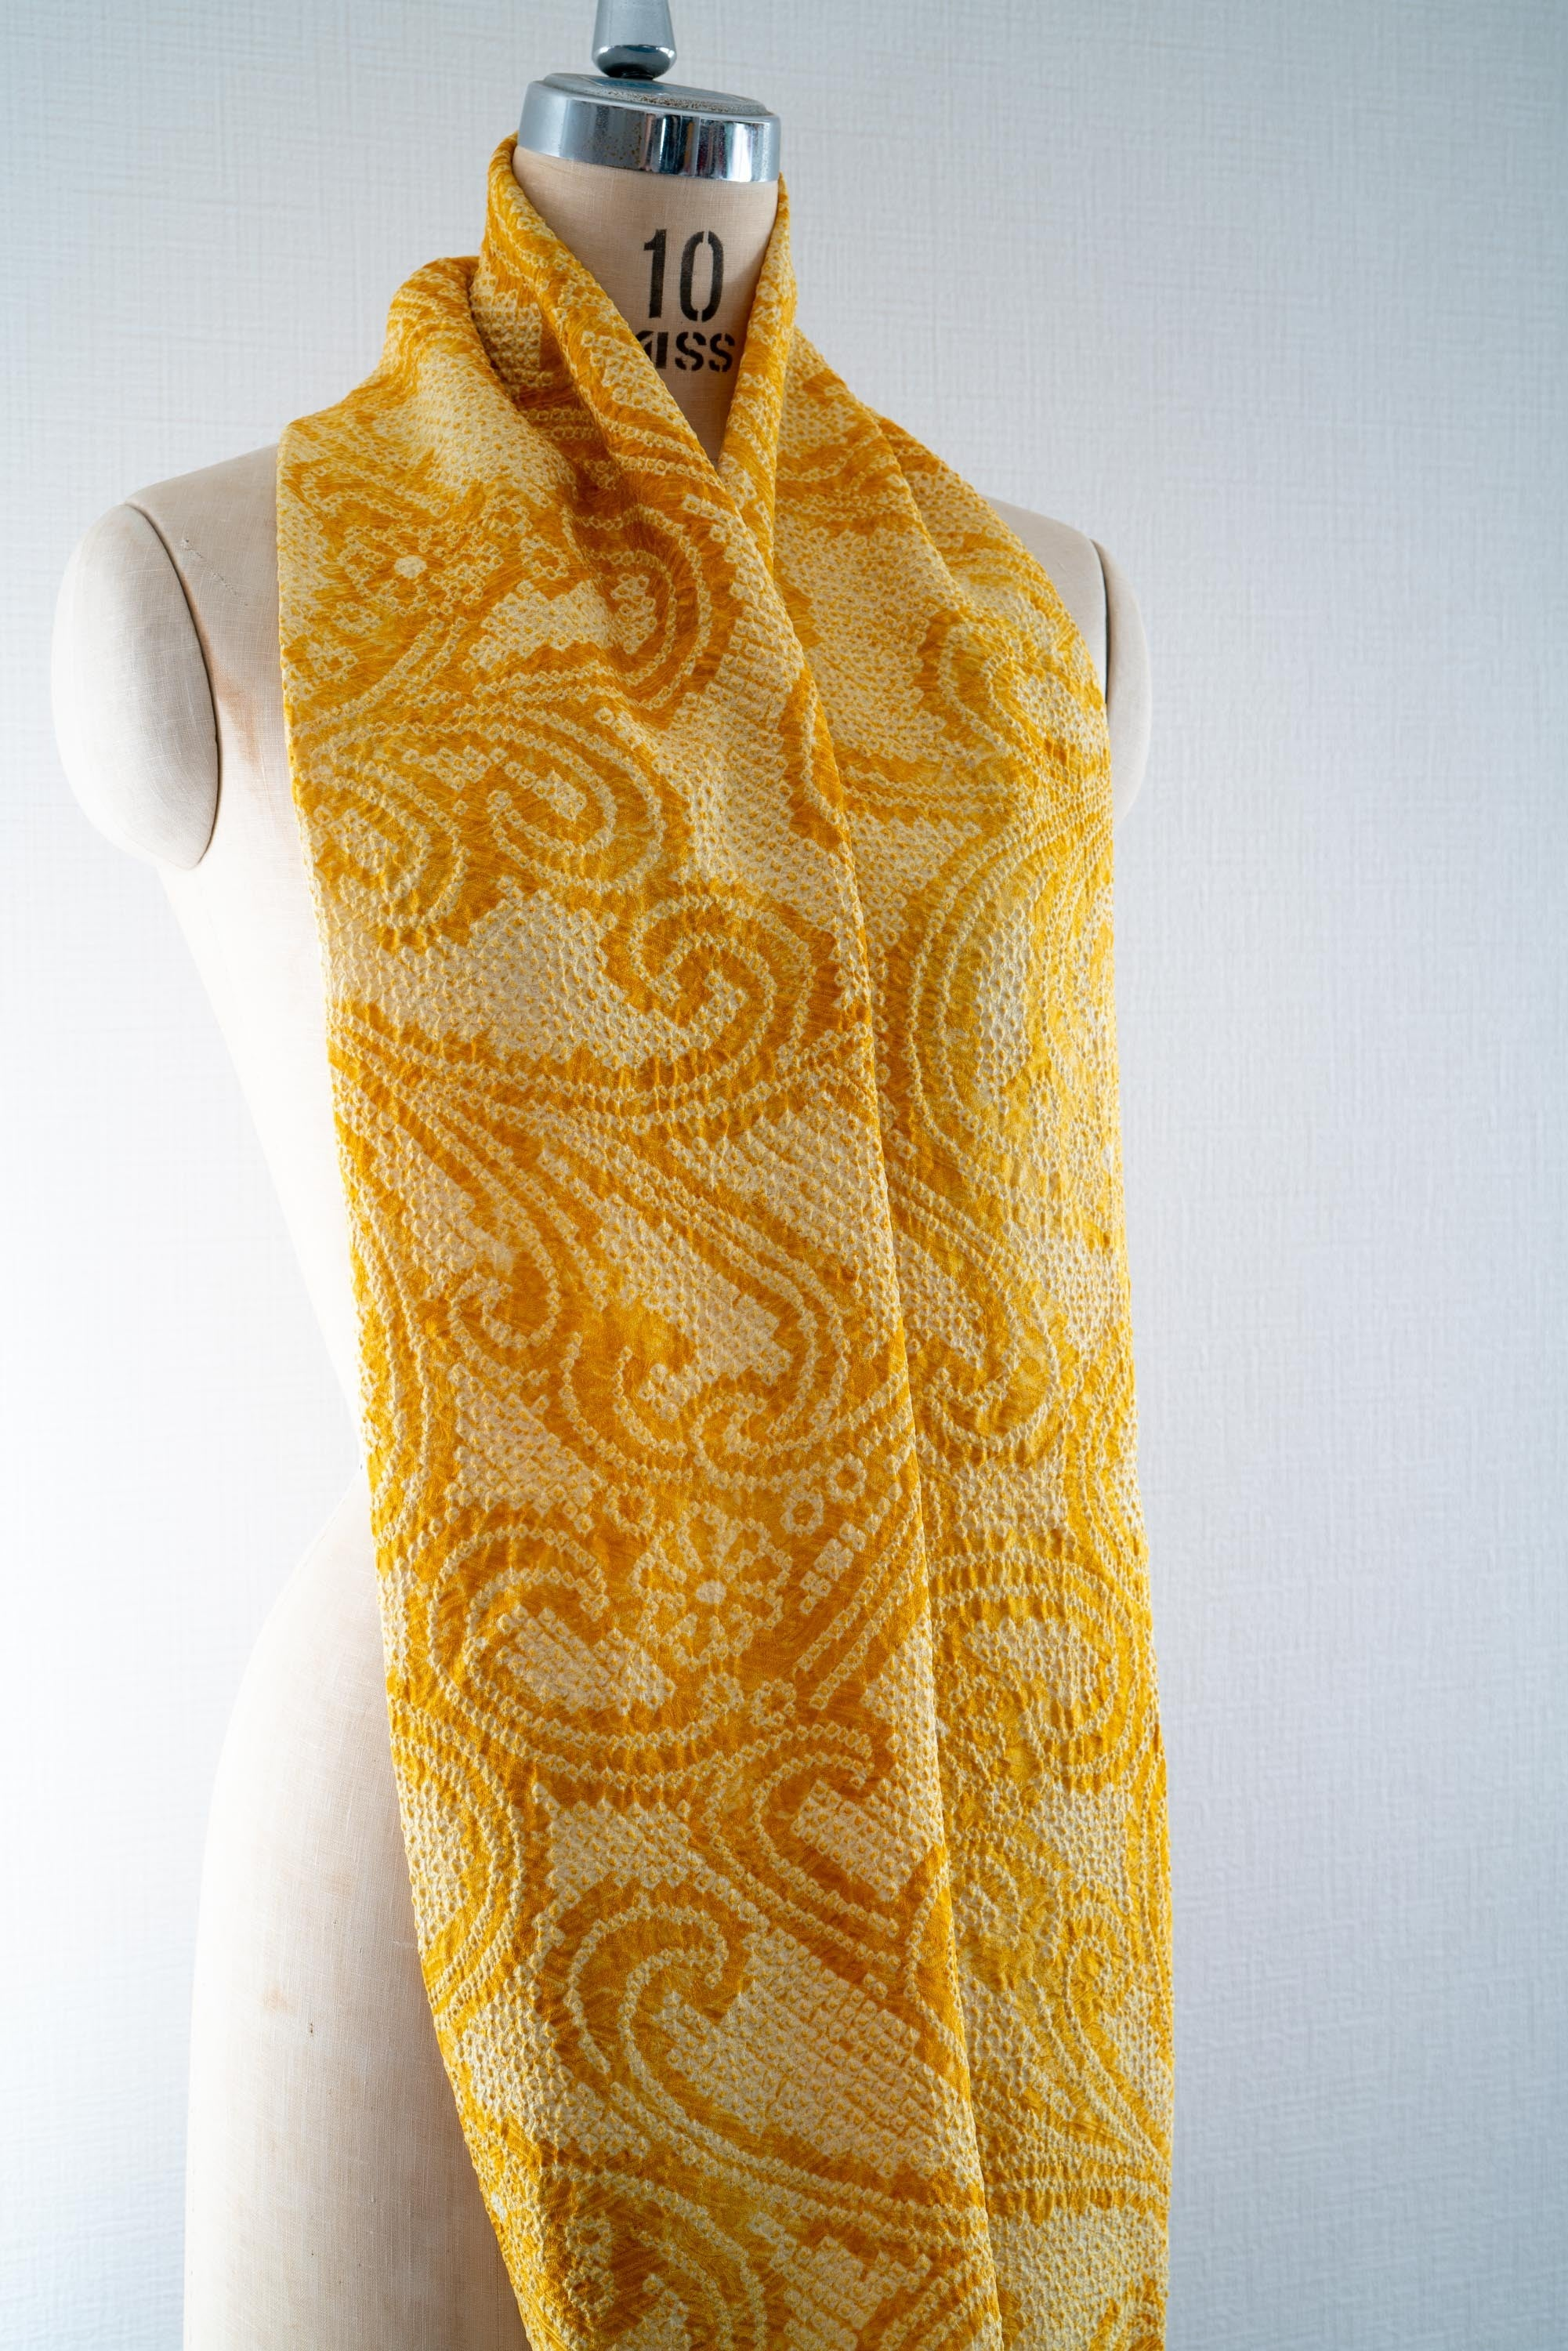 Upcycled Shibori Kimono Silk Scarf - Yellow Sustainable Fashion Traditional Japanese Tie Dye Floral Patterns Infinity Scarves